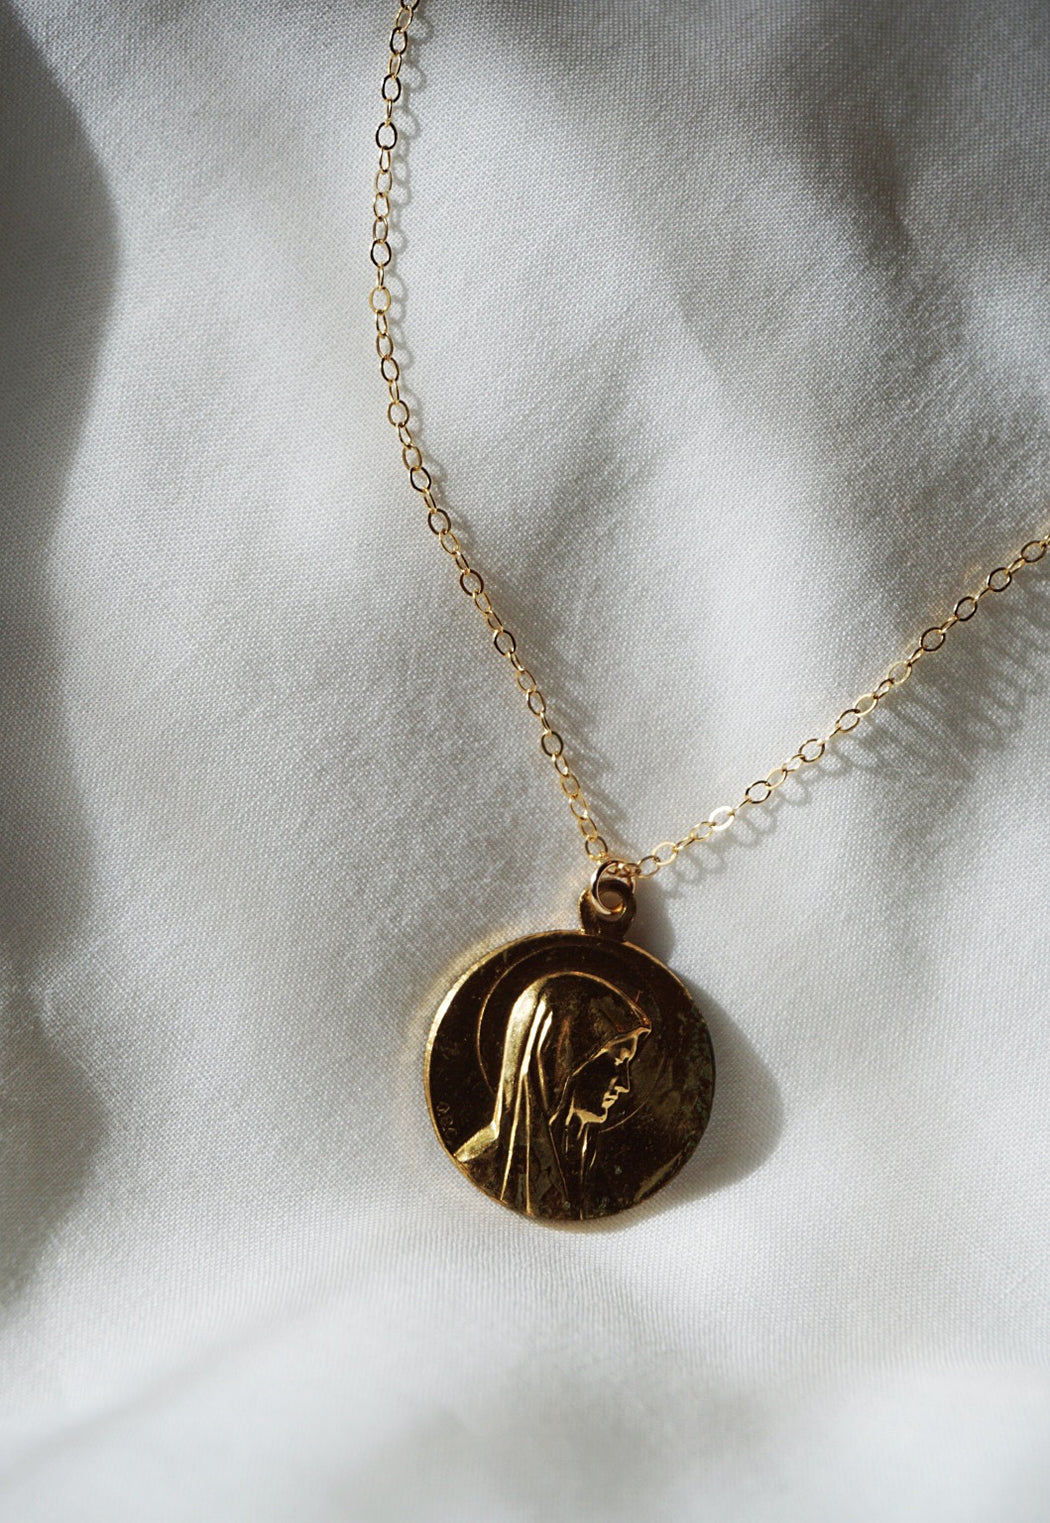 Vintage gold filled Mary pendant